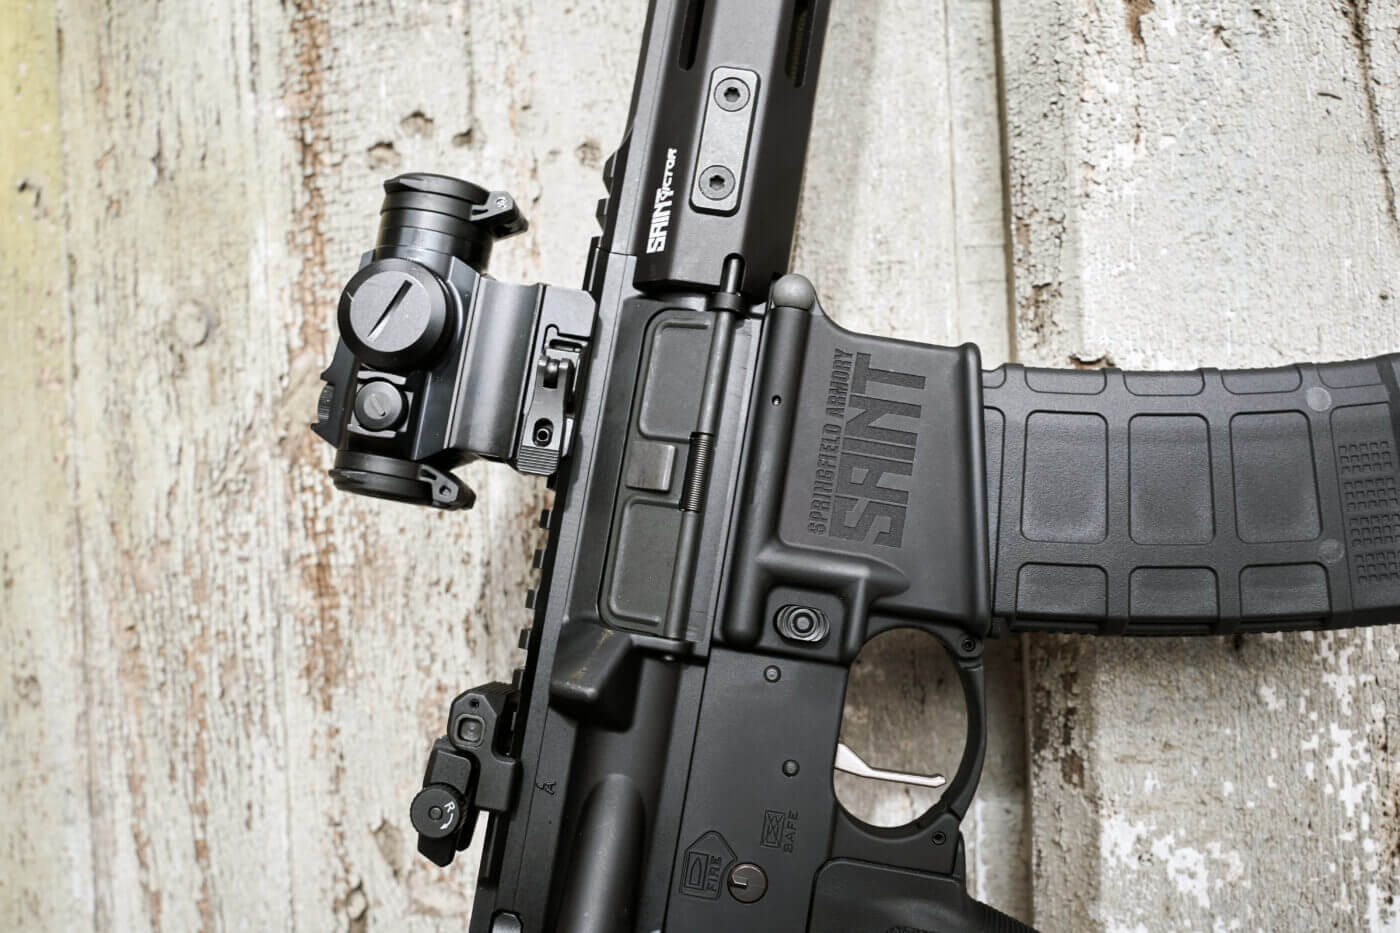 Optics-ready AR-15